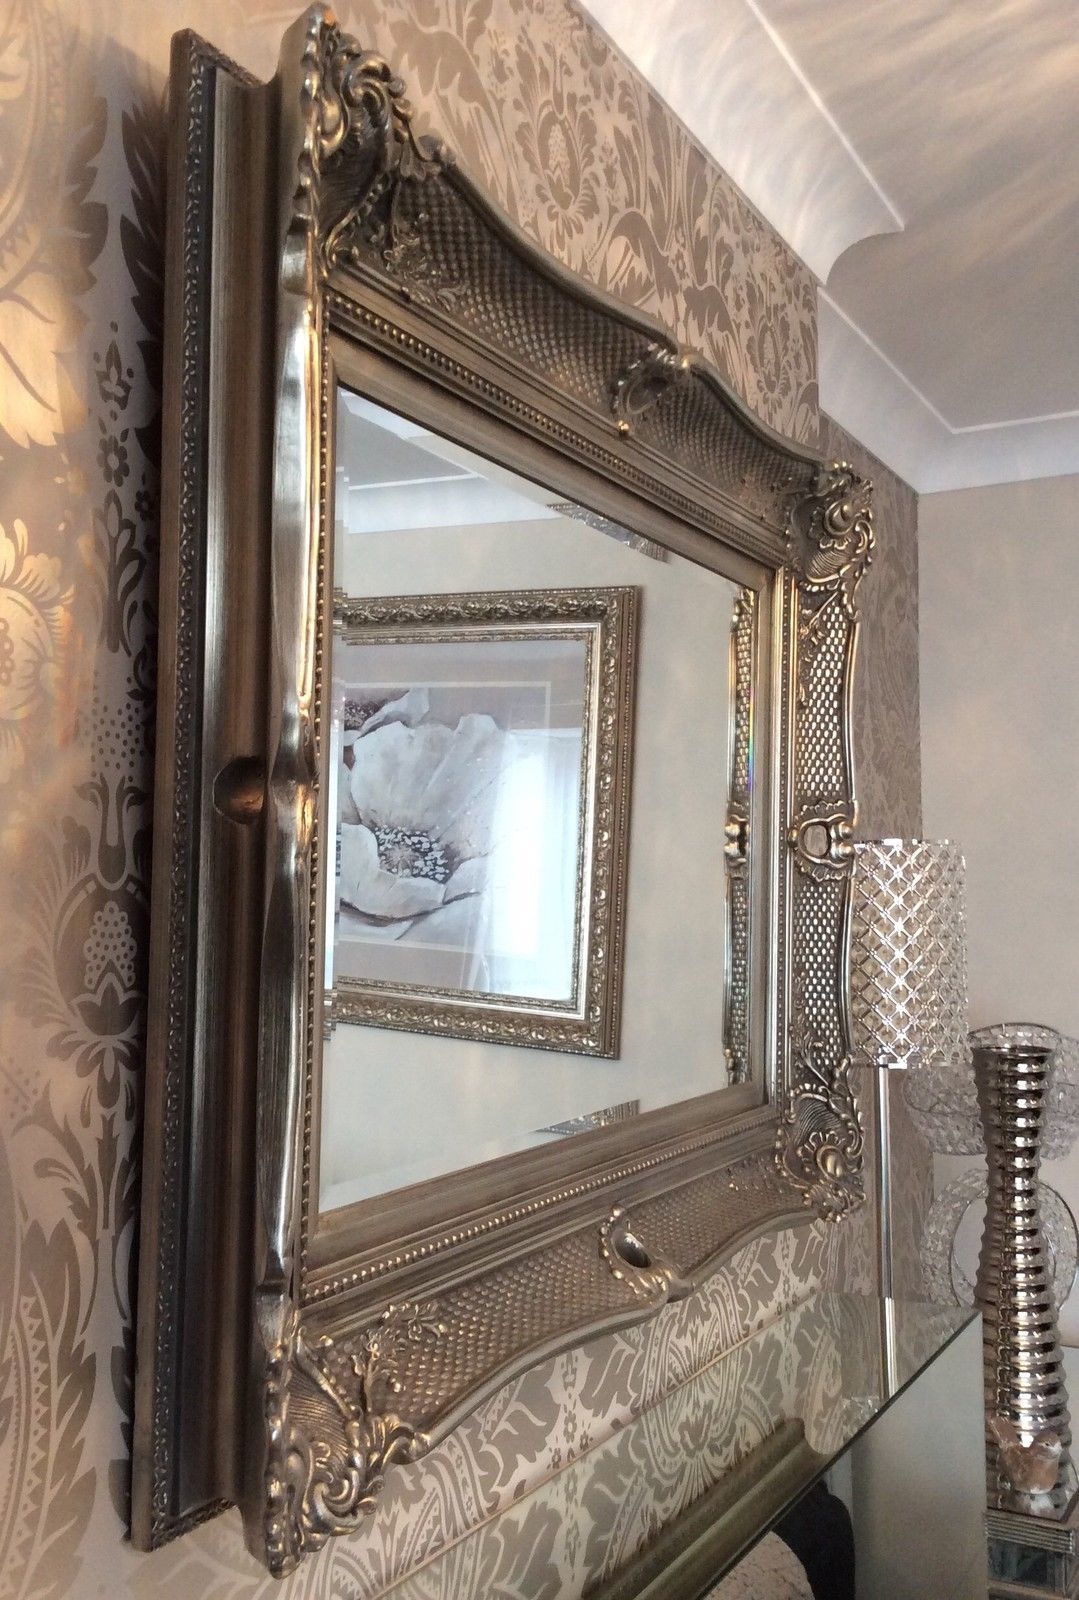 Wonderful ornate fabulous extra large wall mirror range Large mirror on wall